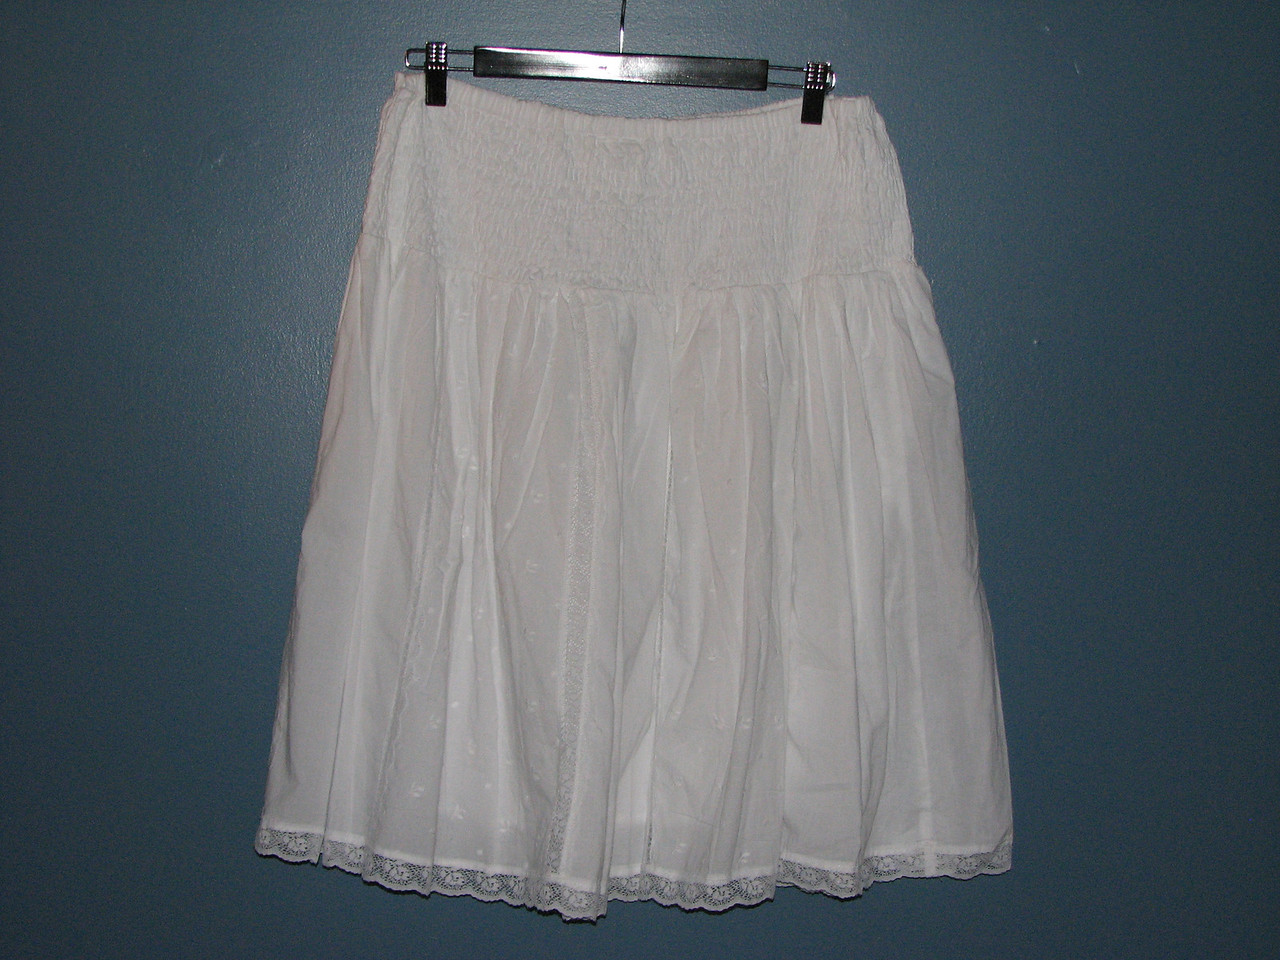 Motherhood eyelet lace skirt size M $10